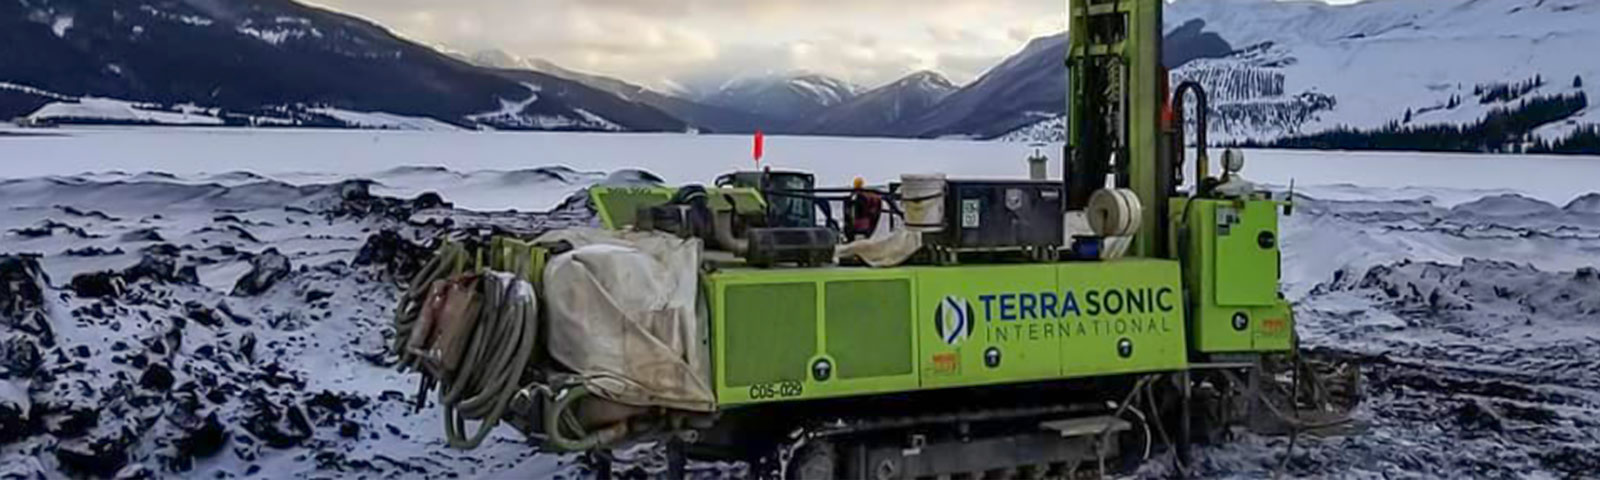 Terra Sonic Sonic Drill rig used for mining exploration